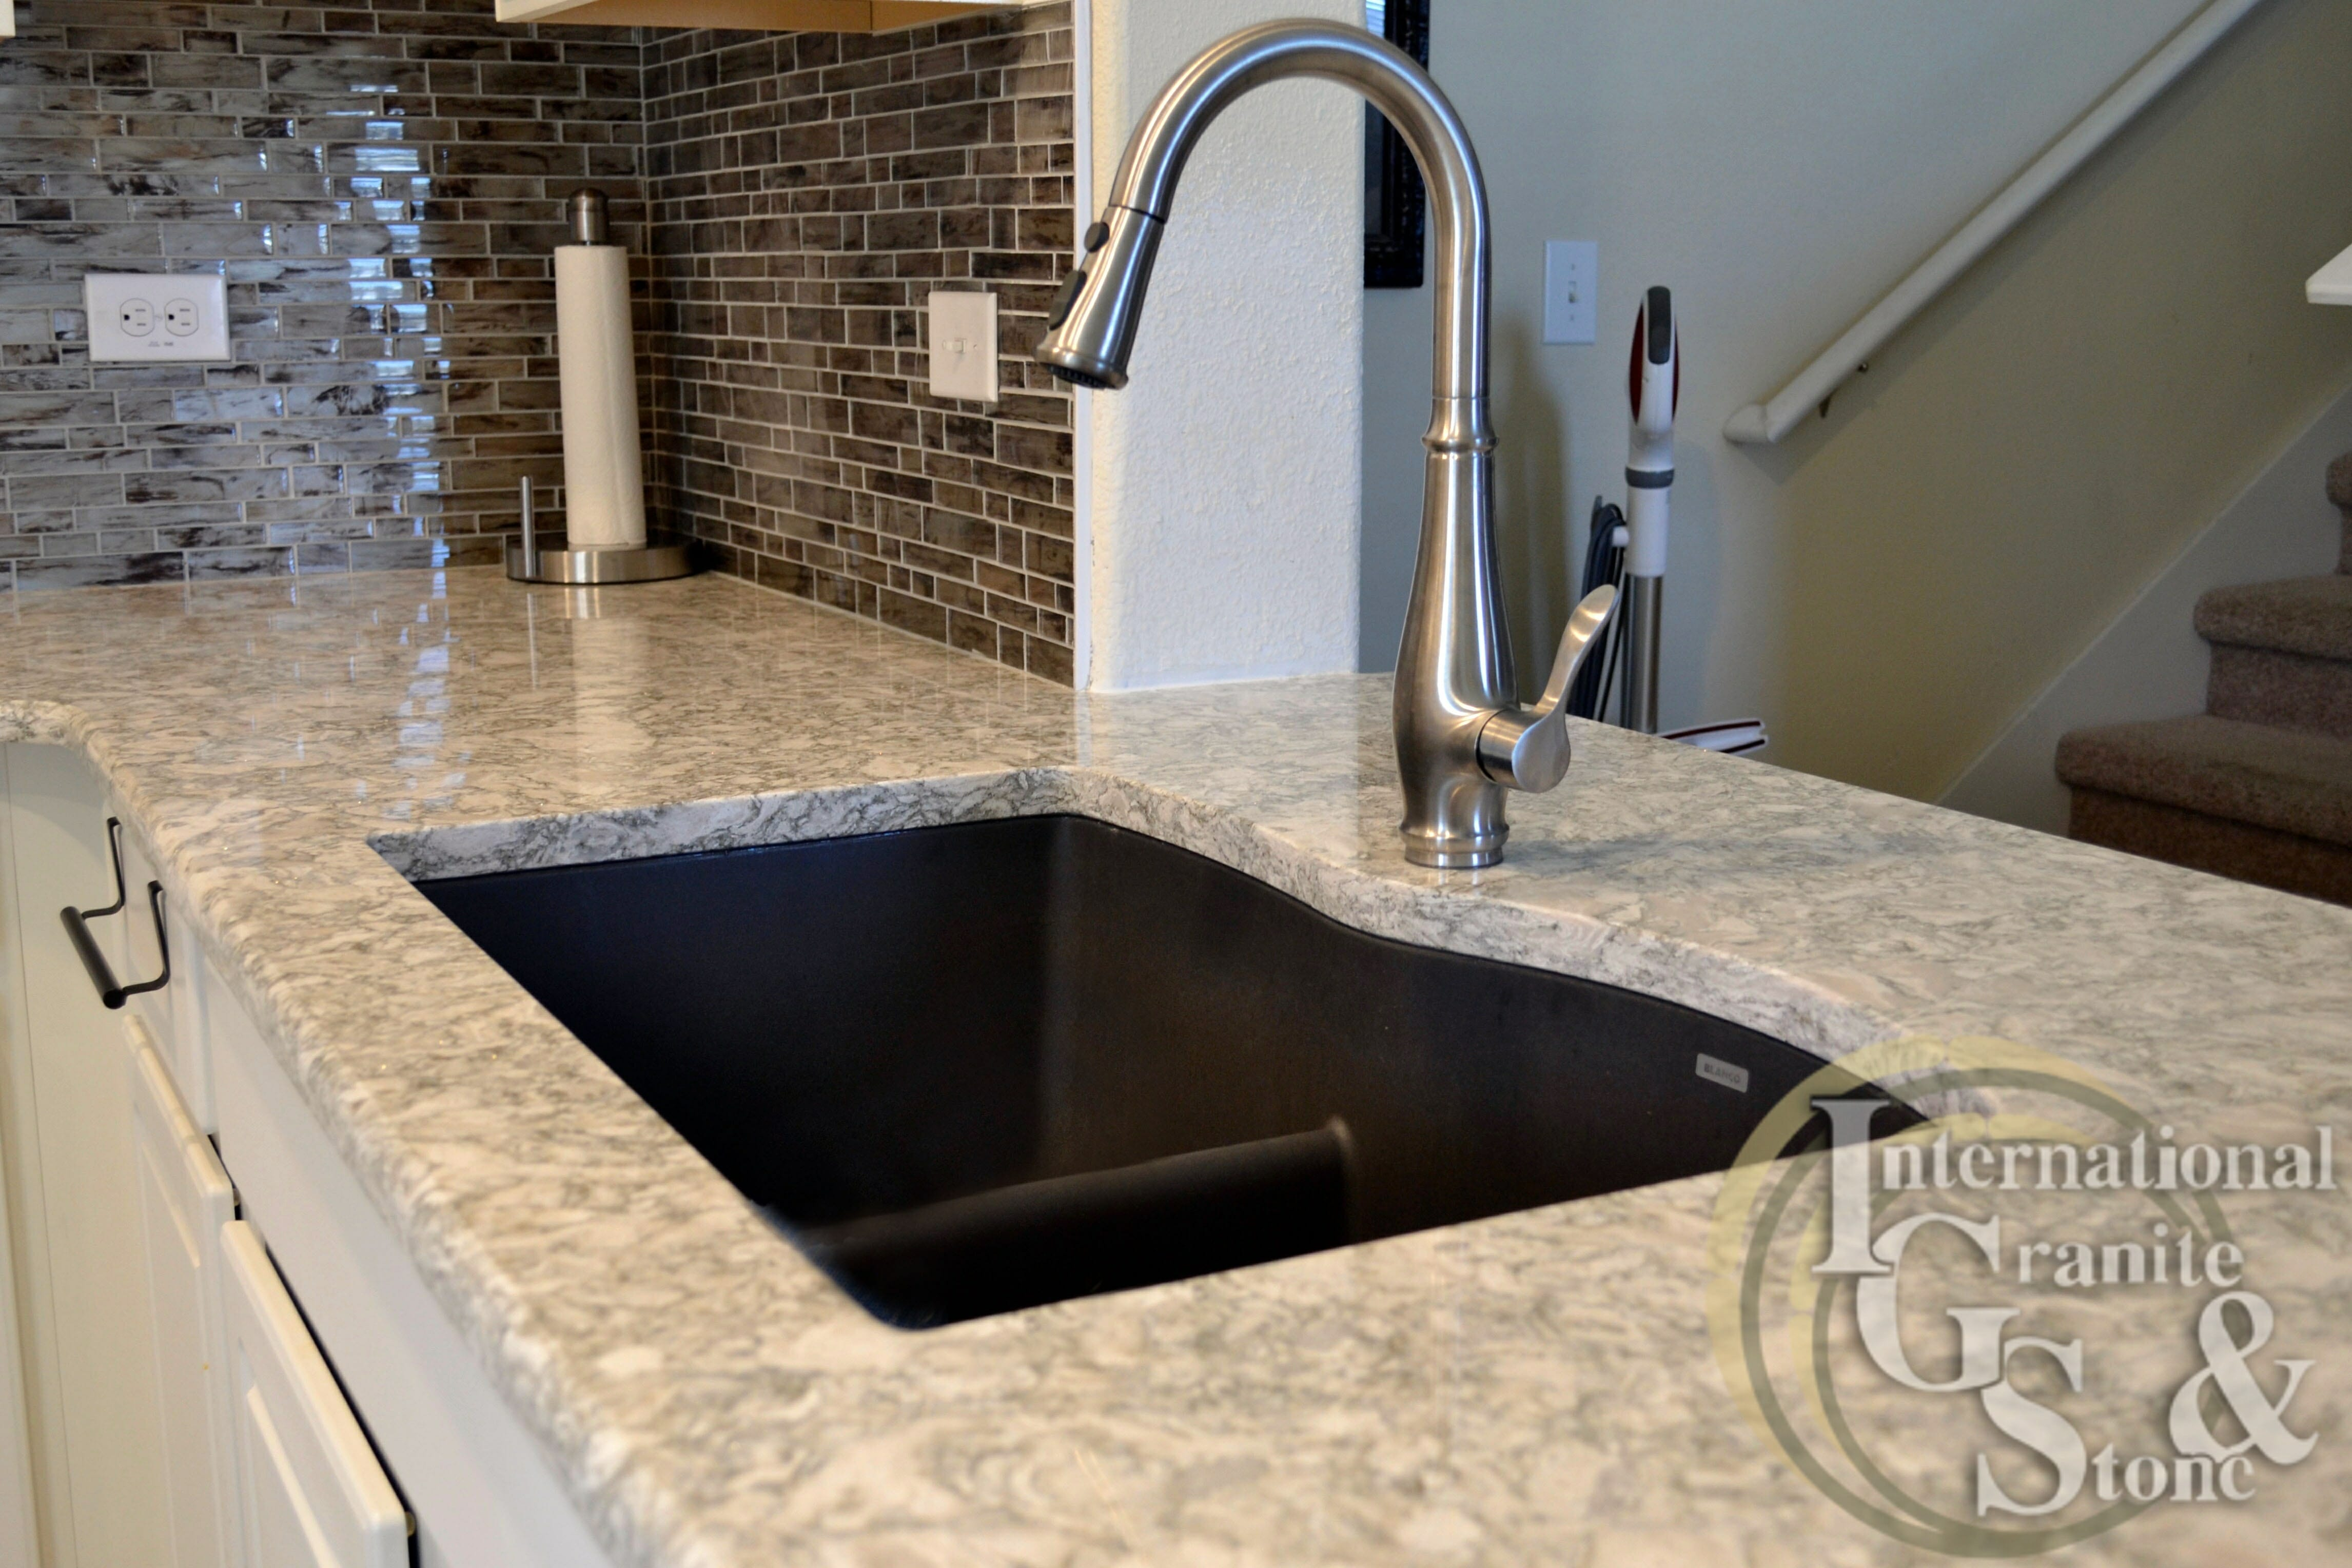 Quartz Countertops ndon FL on